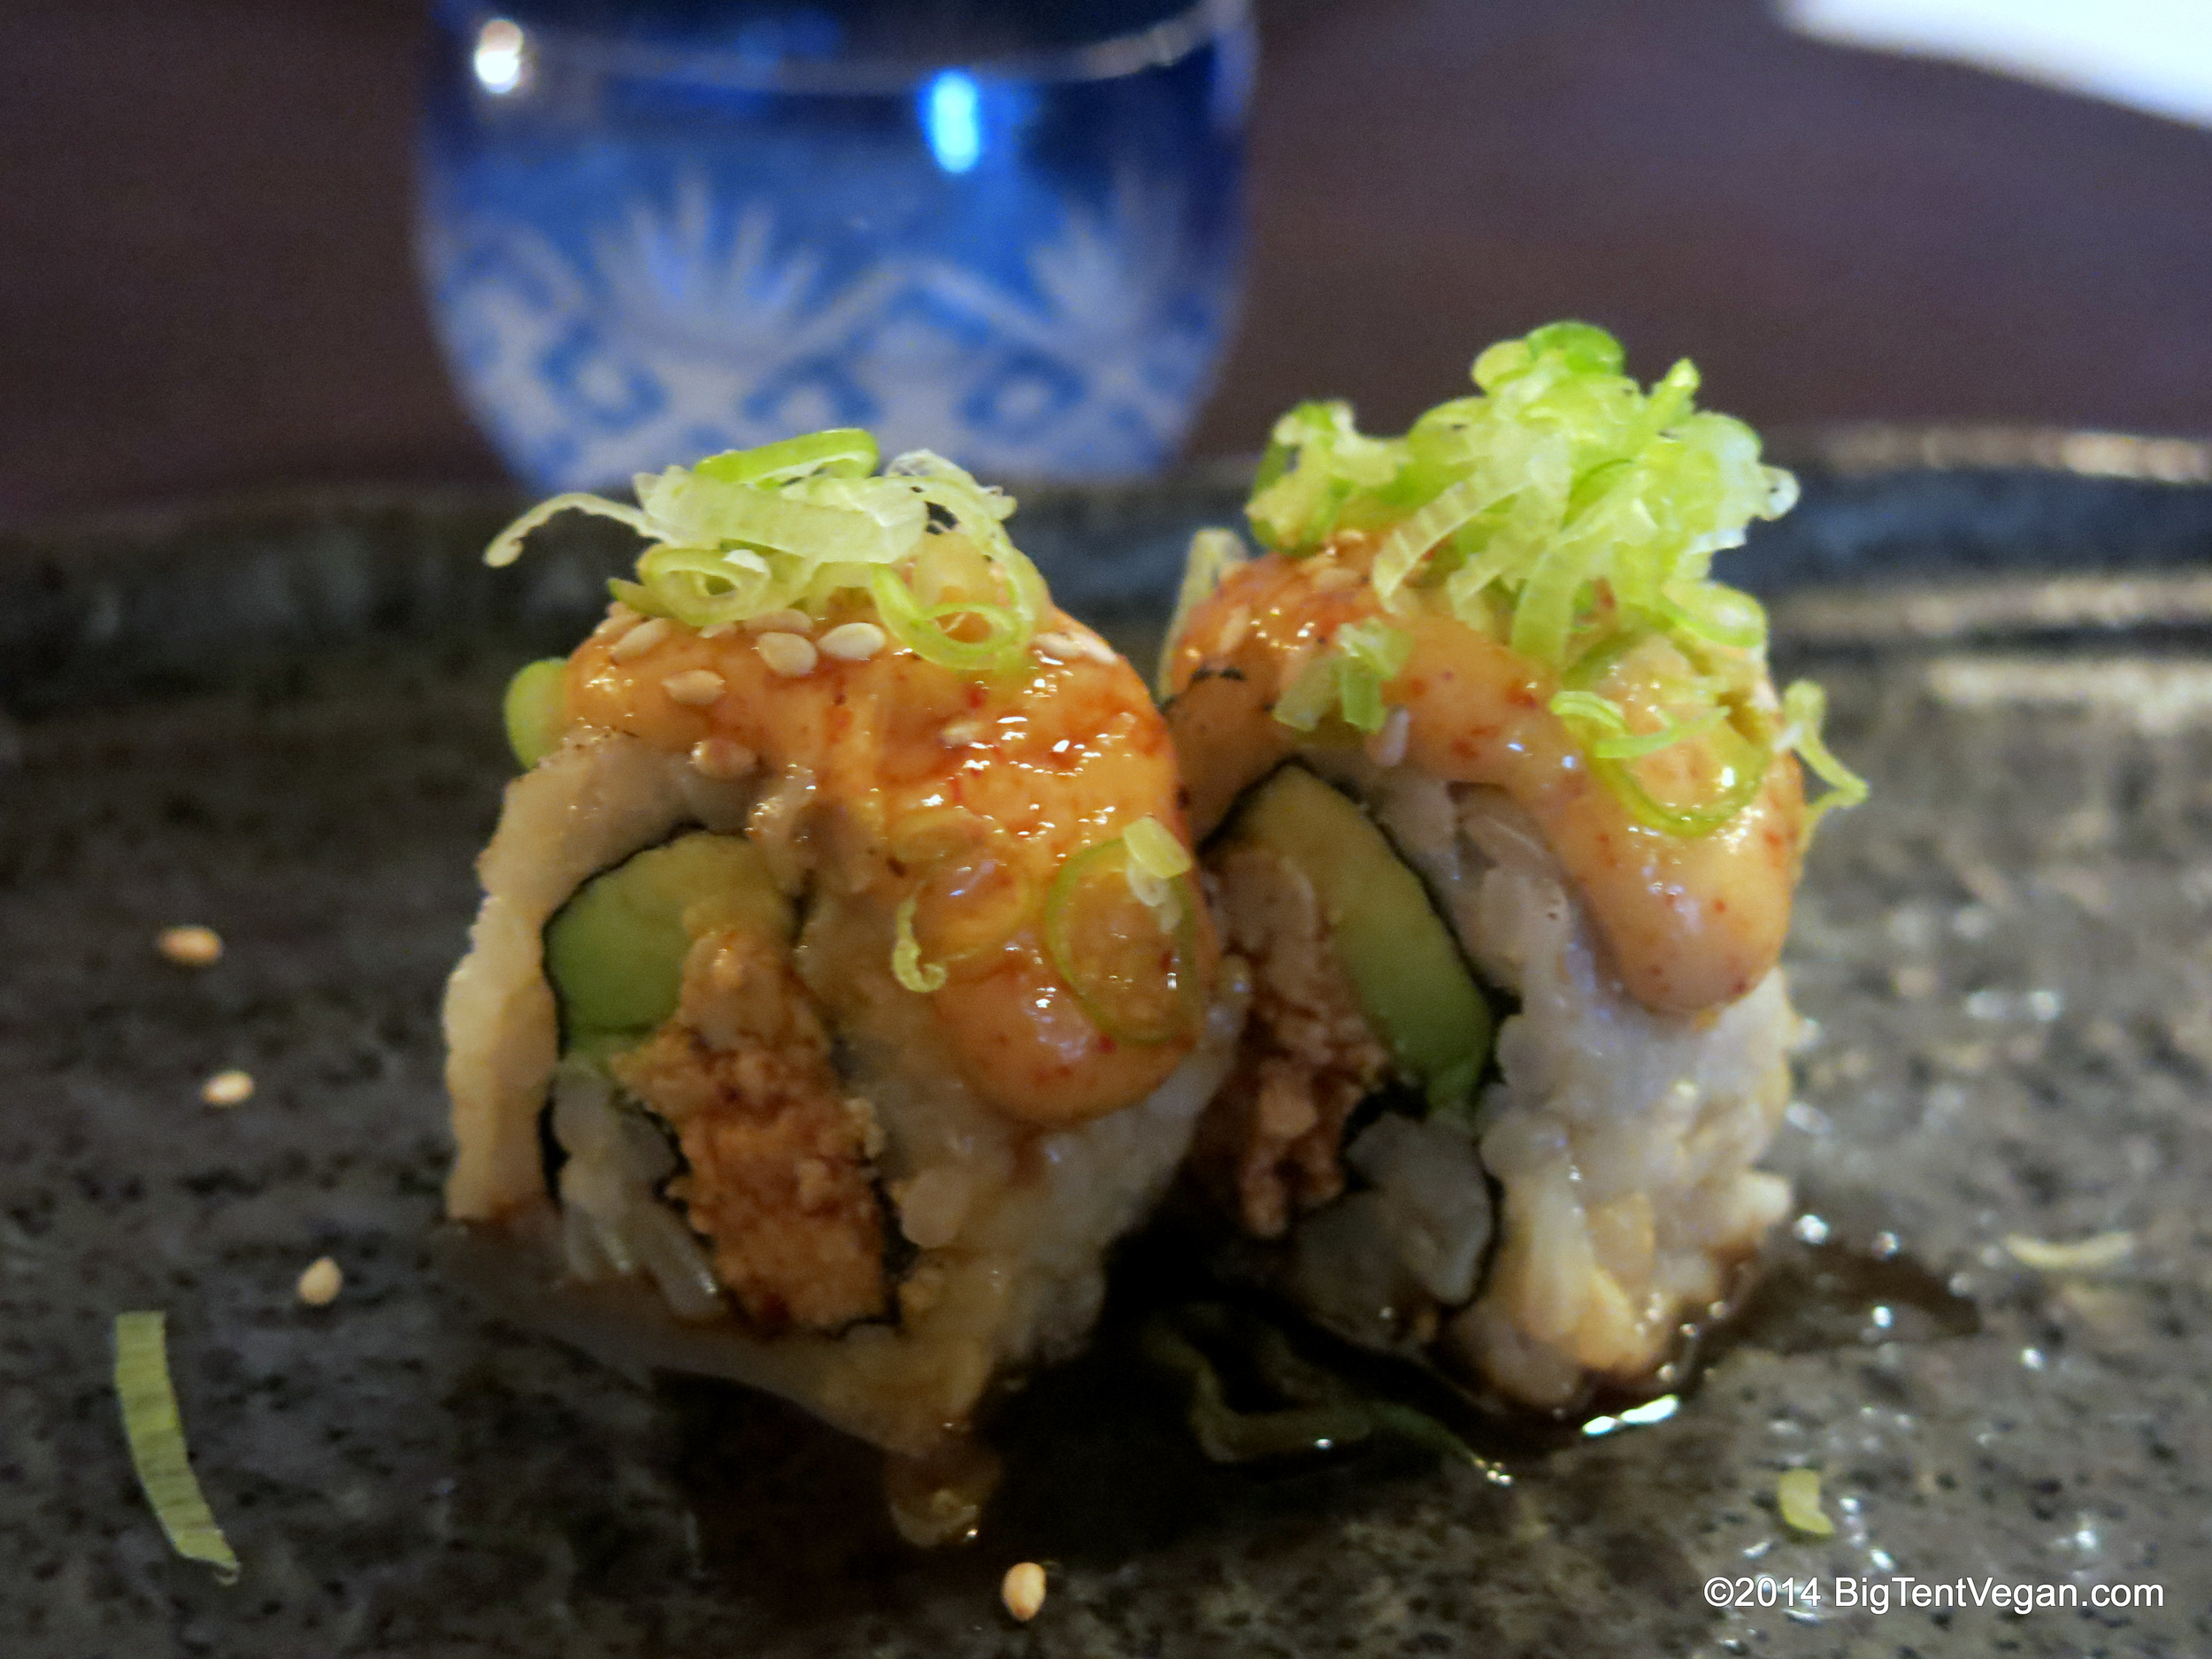 Course Seven: Dynamite Roll